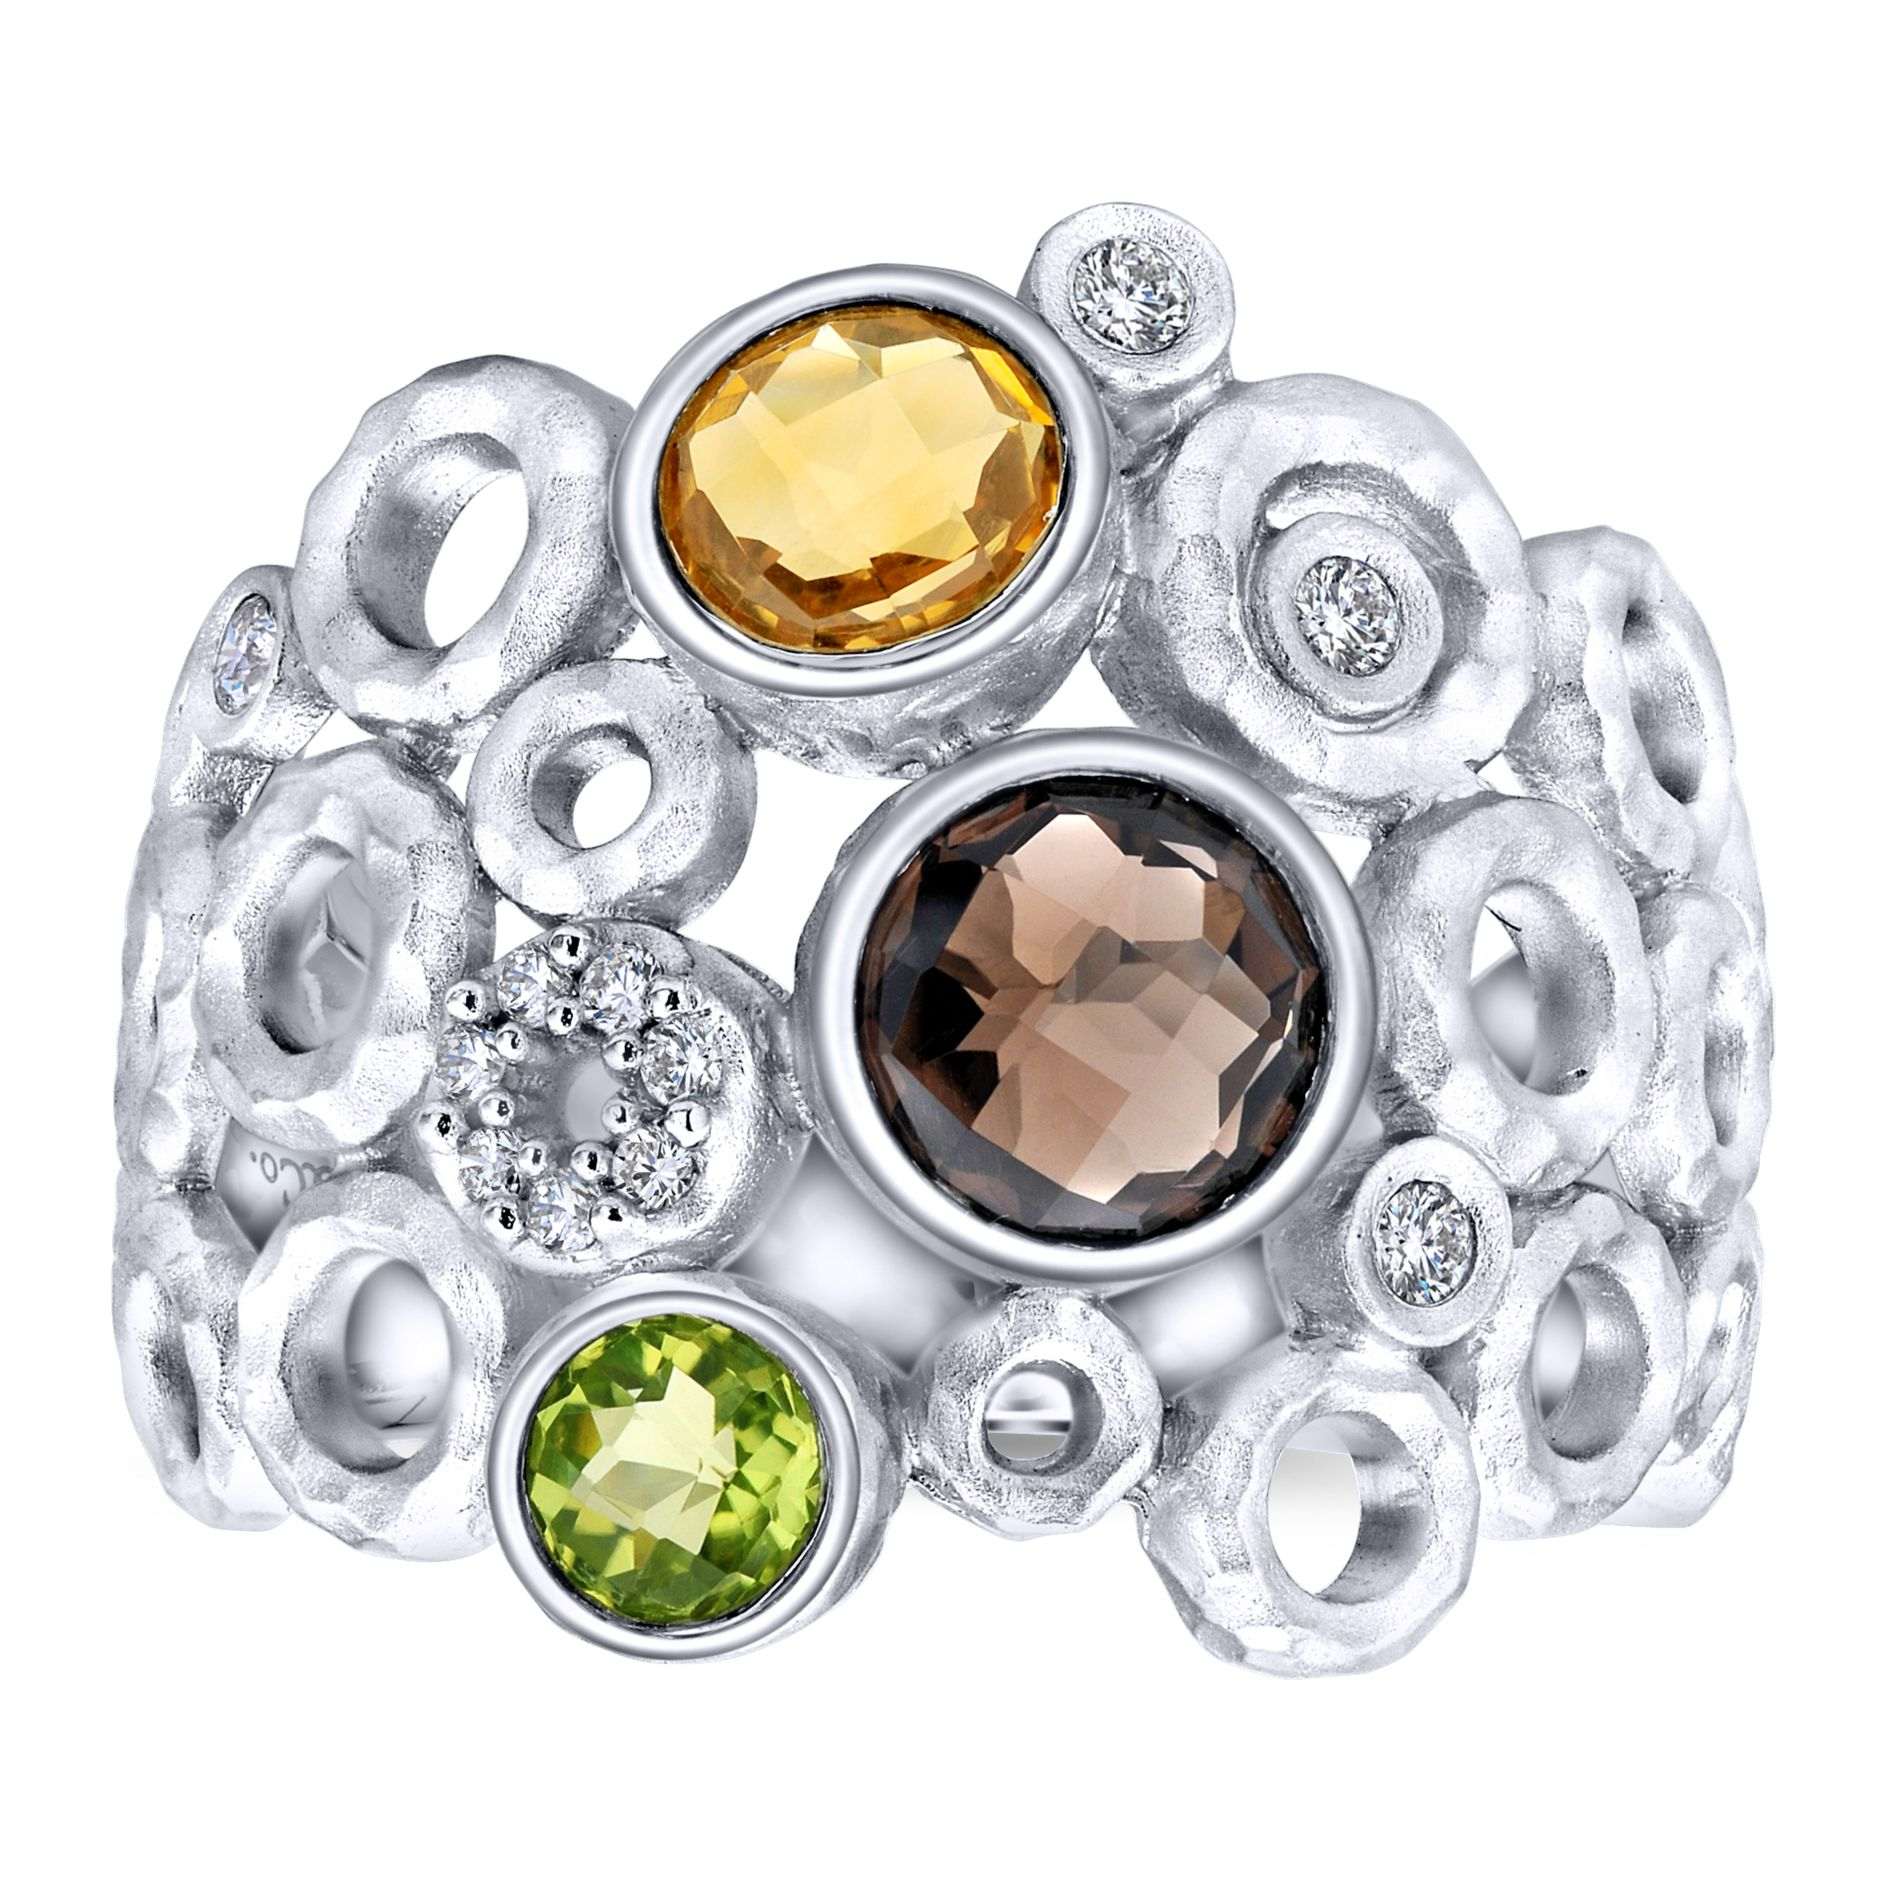 Rings - SILVER WIDE BAND MULTI COLOR STONE LADIES RING - image 4